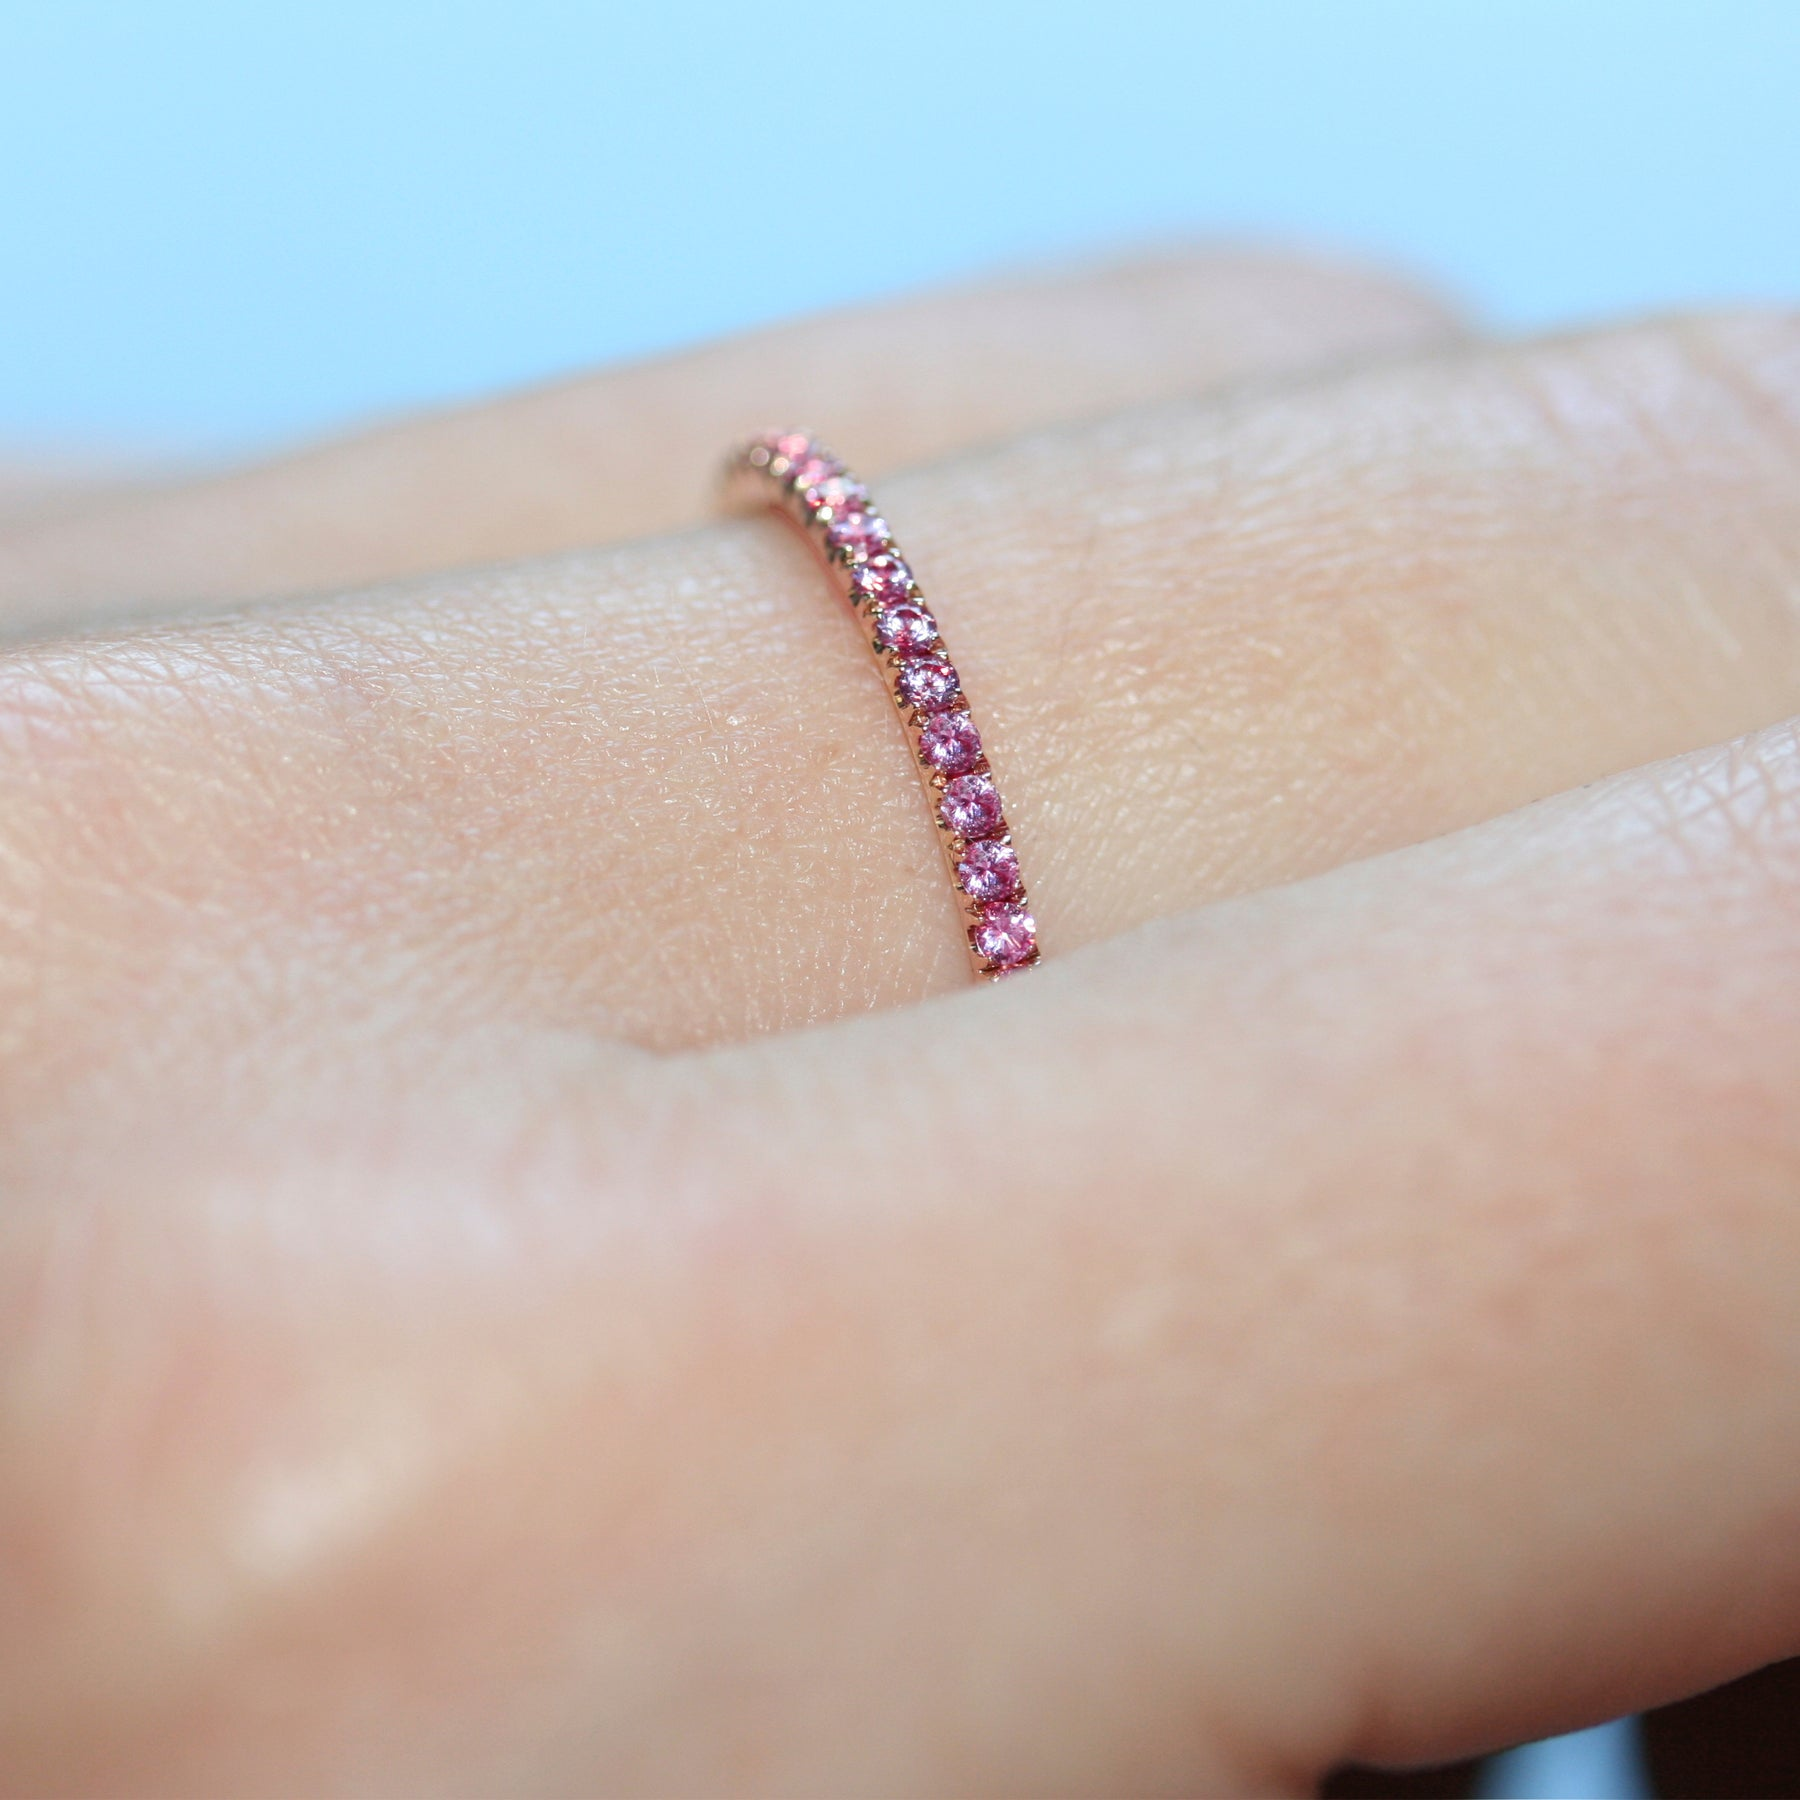 Closeup of a pink sapphire eternity ring in 18ct rose gold on a hand